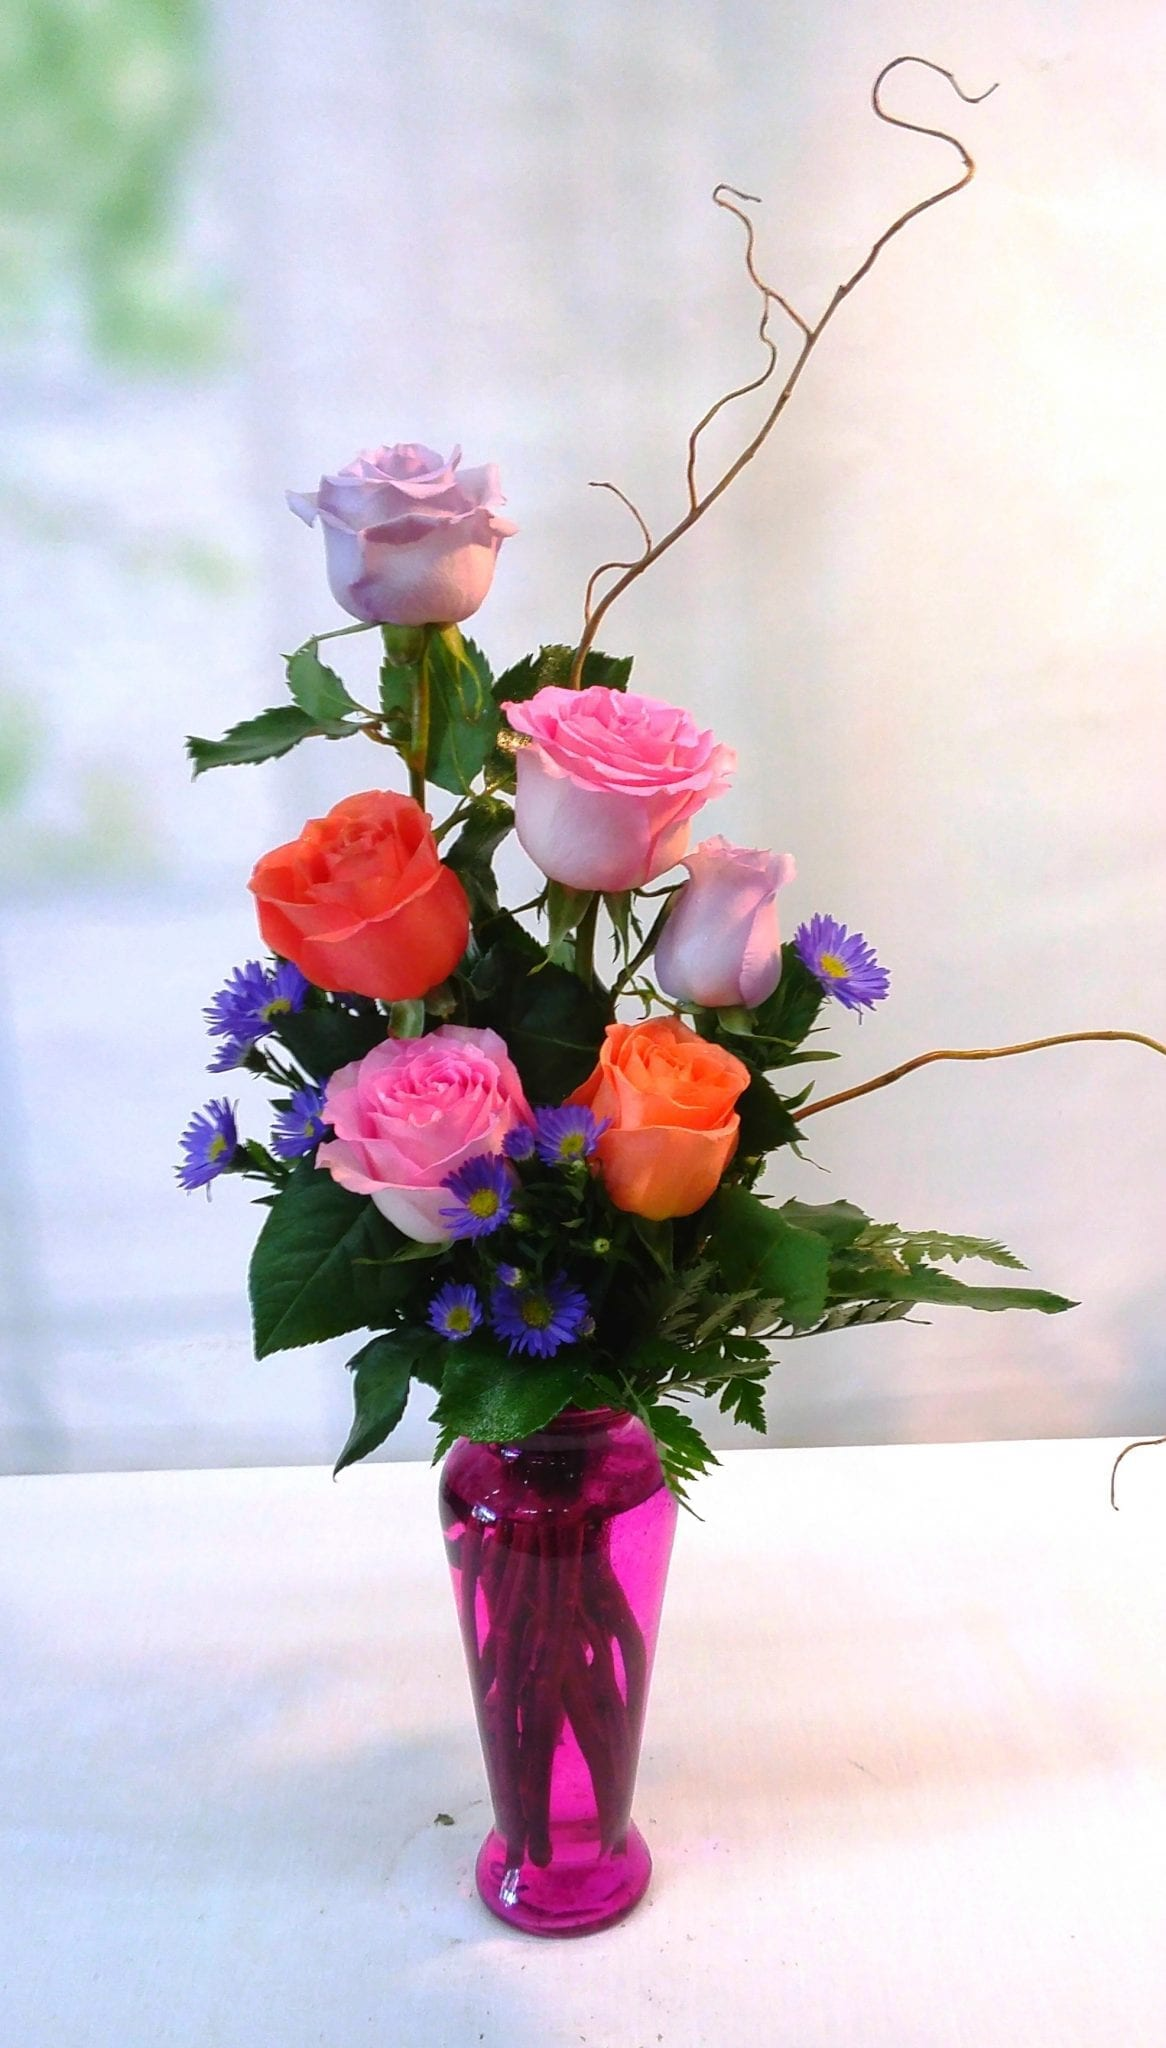 6 Roses In A Glass Vase Colorful And Contemporary